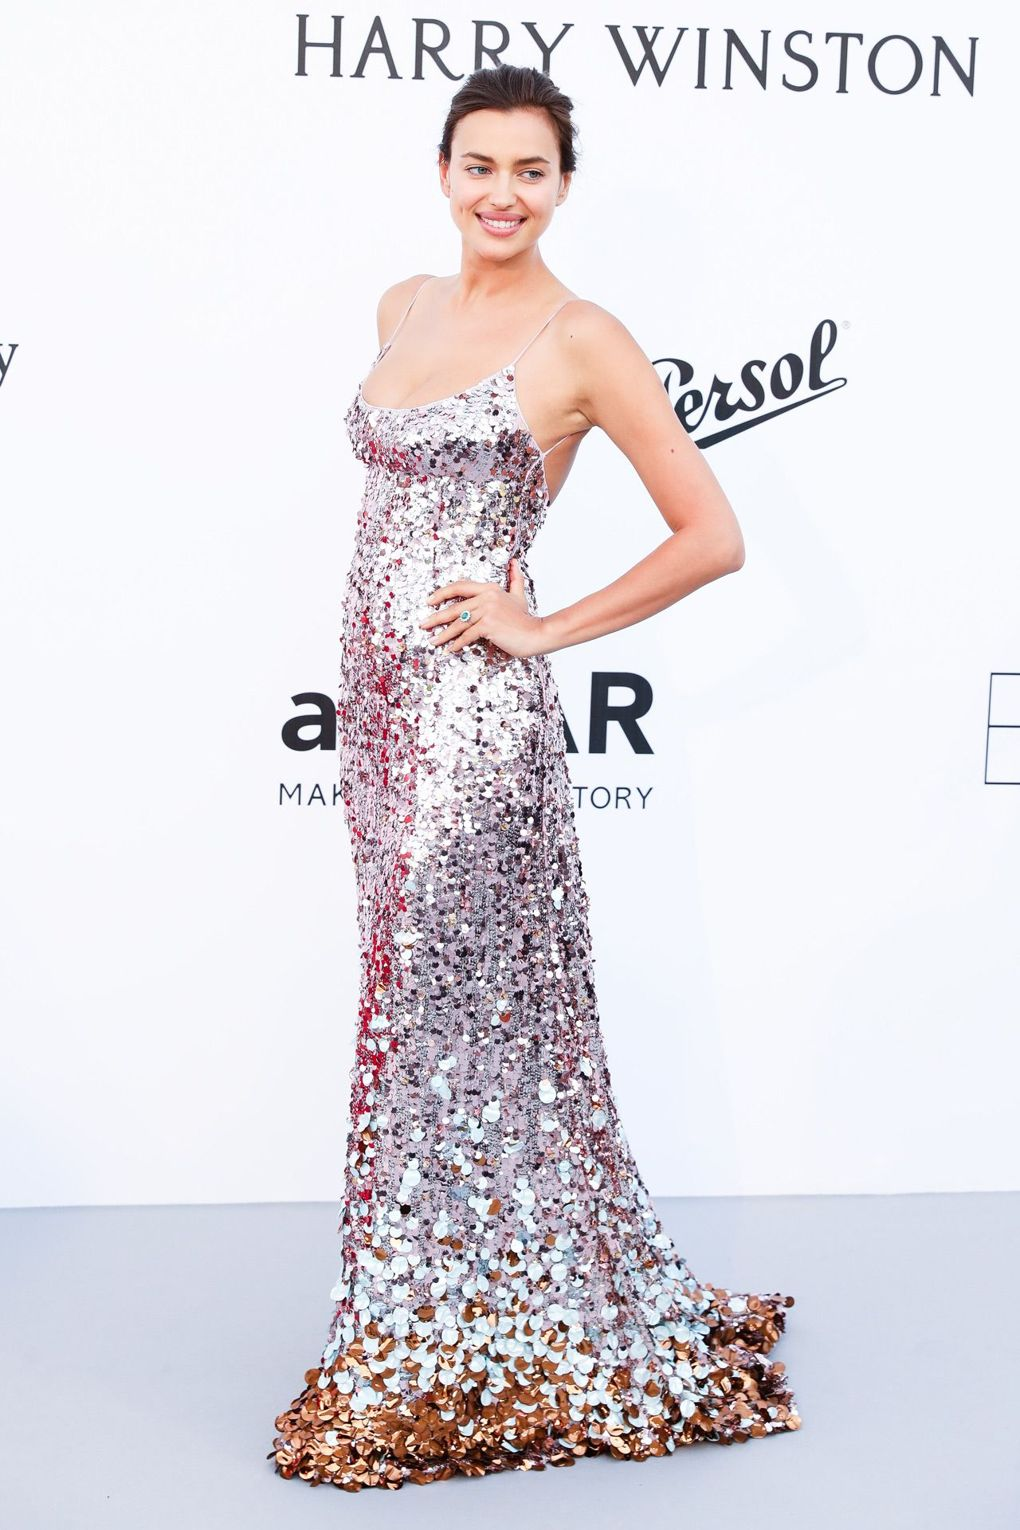 From @bellahadid to @theirishayk, catch up with the highlights from the amfAR red carpet: https://t.co/fZB1v8hu5U https://t.co/ThC7pCIkXt